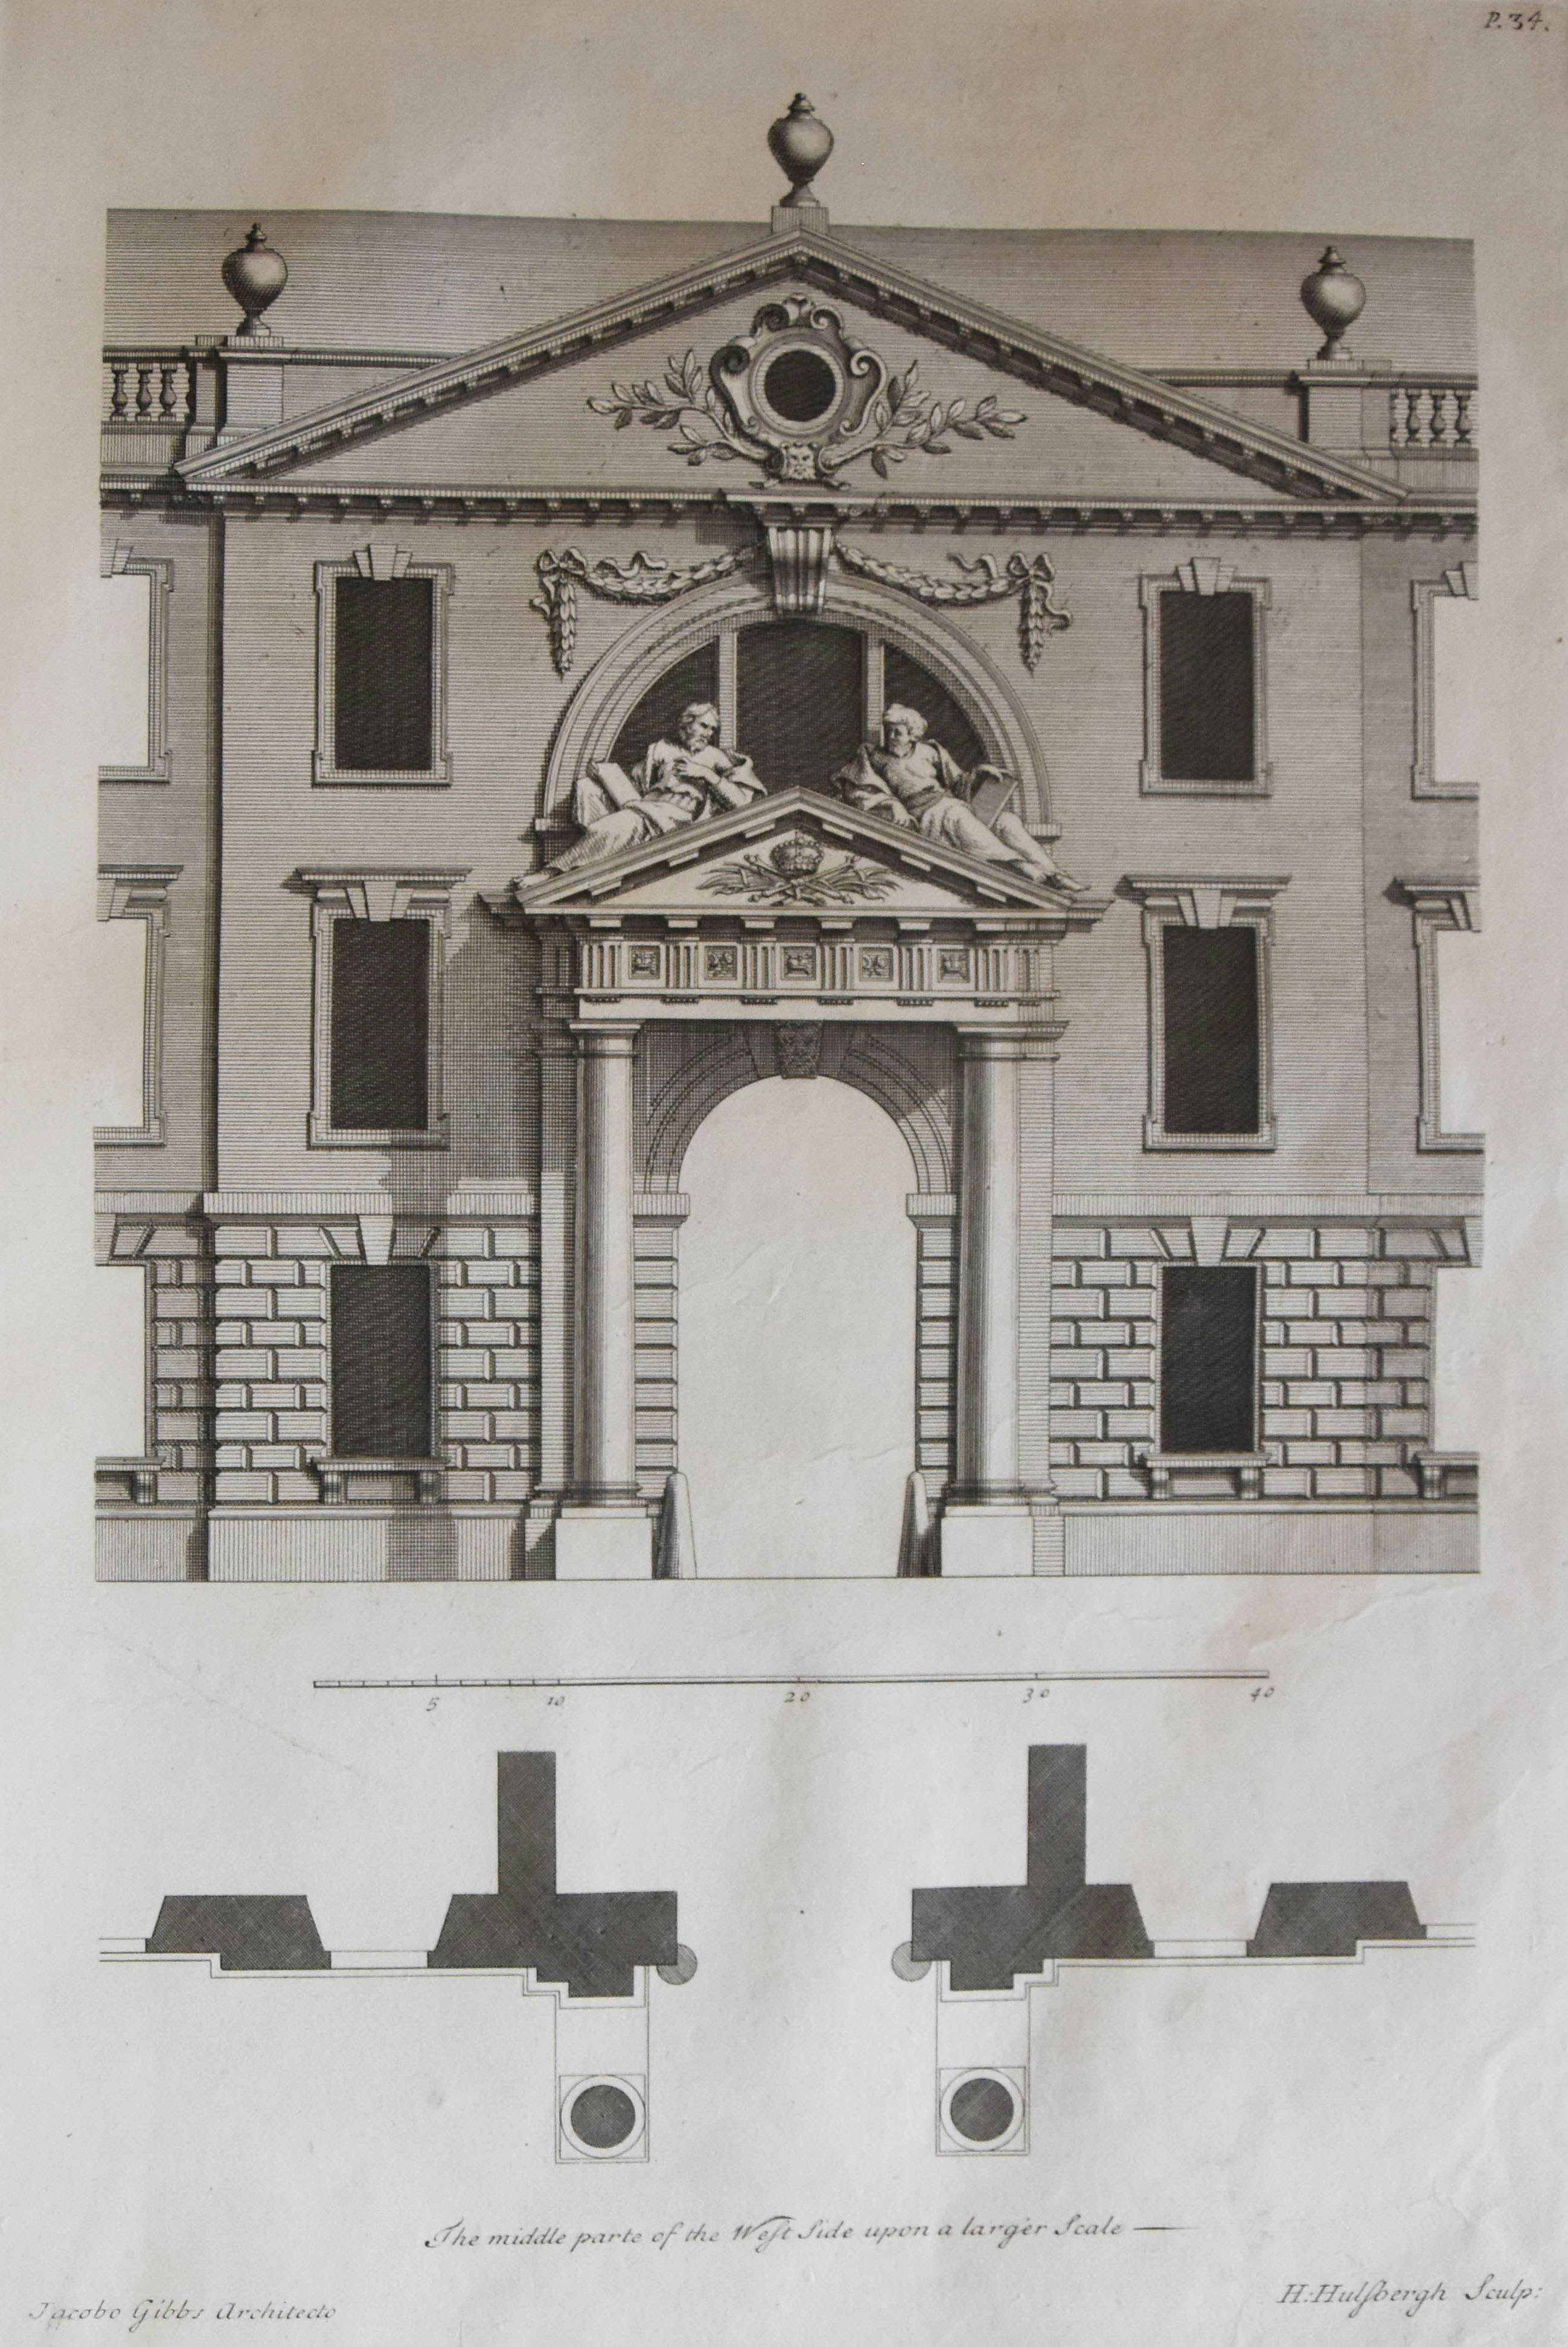 'The middle part of the West Side, upon a larger Scale'. [James Gibbs' Book of Architecture, plate XXXIV]